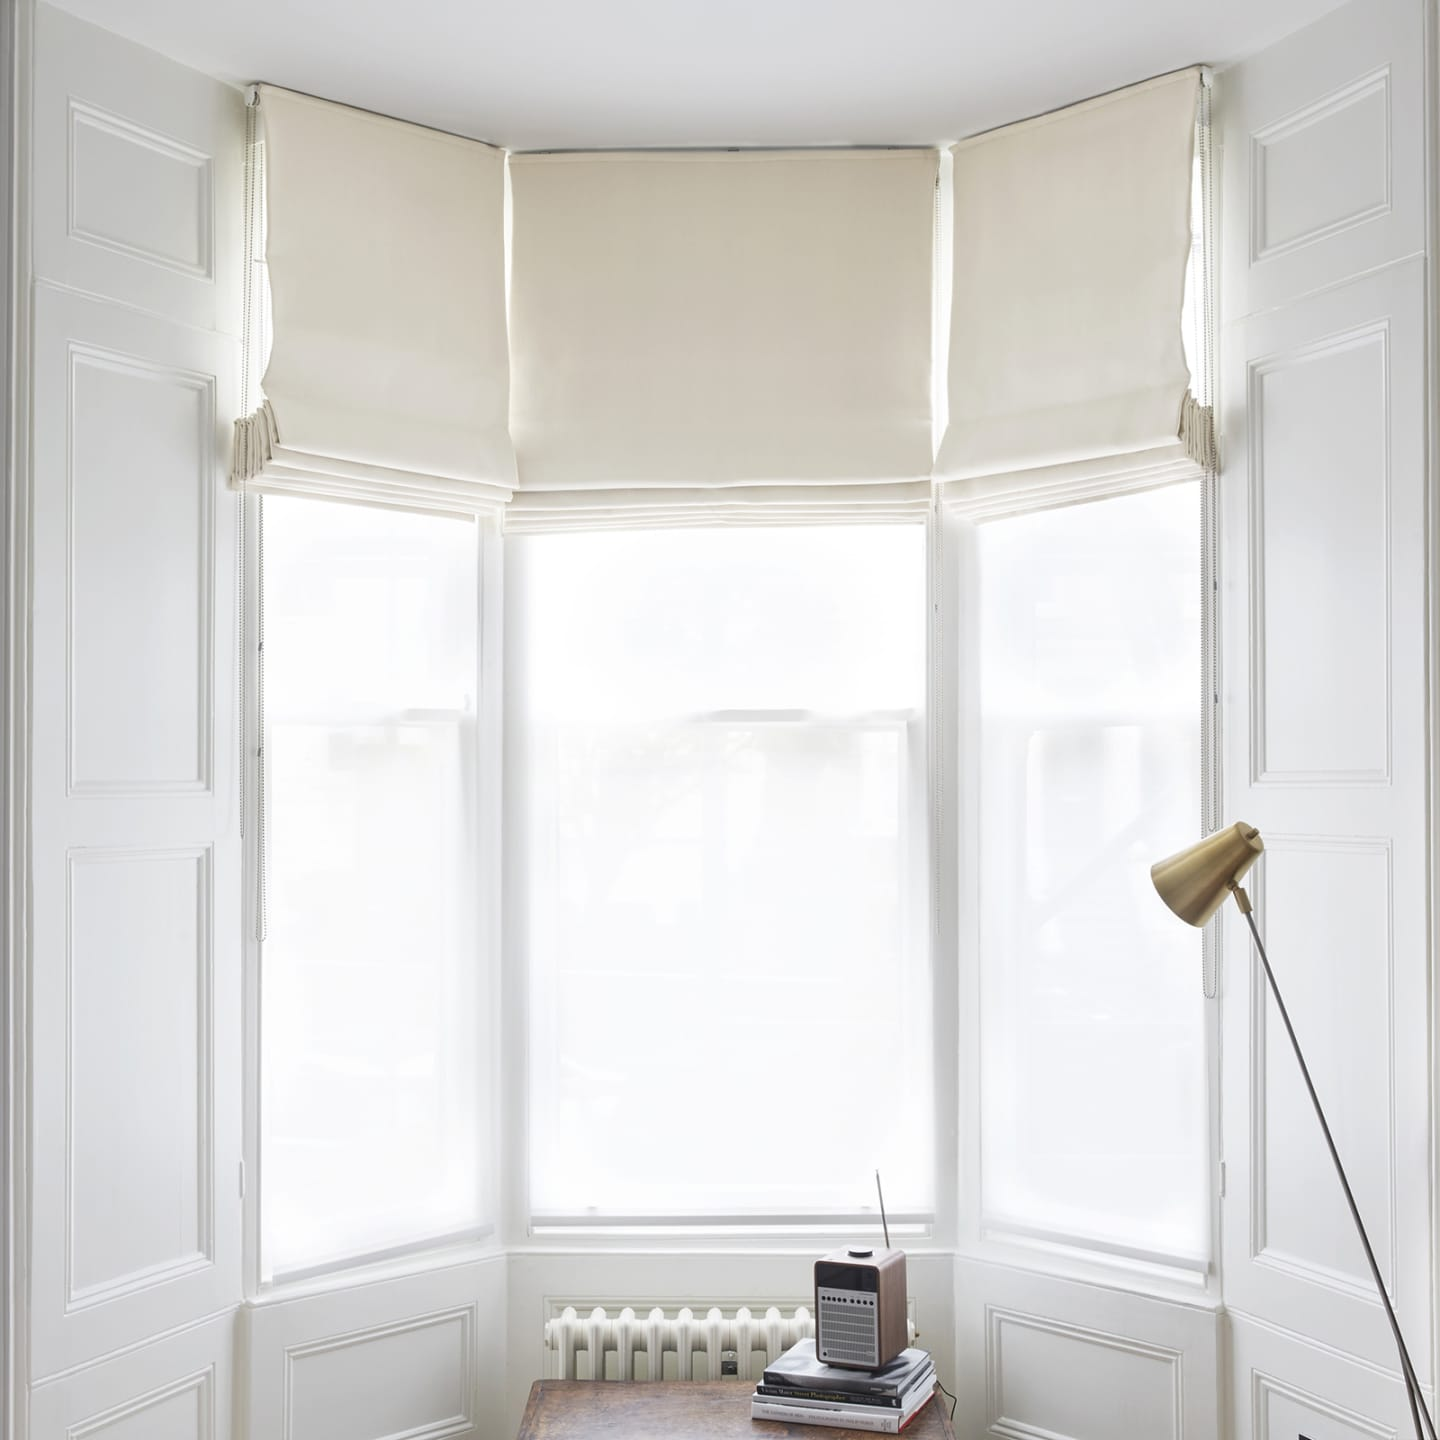 White bay windows with white roman blinds